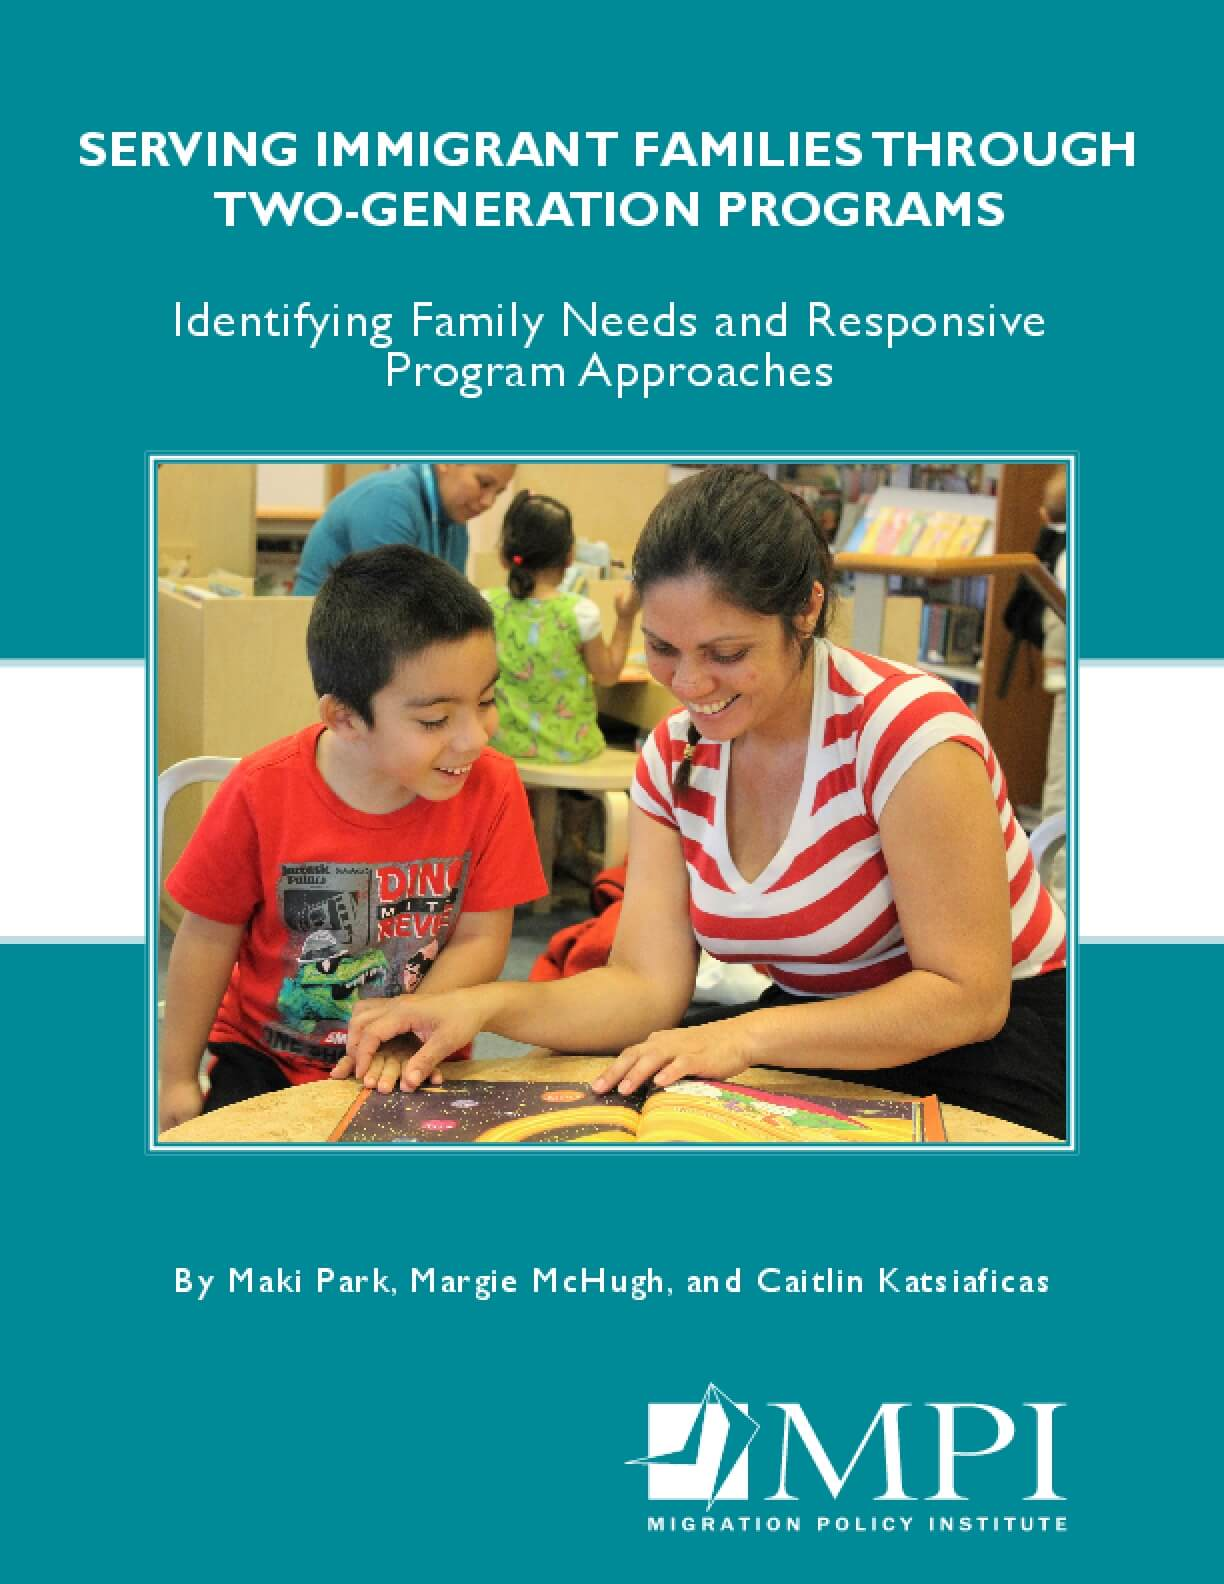 Serving Immigrant Families Through Two-generation Programs: Identifying Family Needs and Responsive Program Approaches